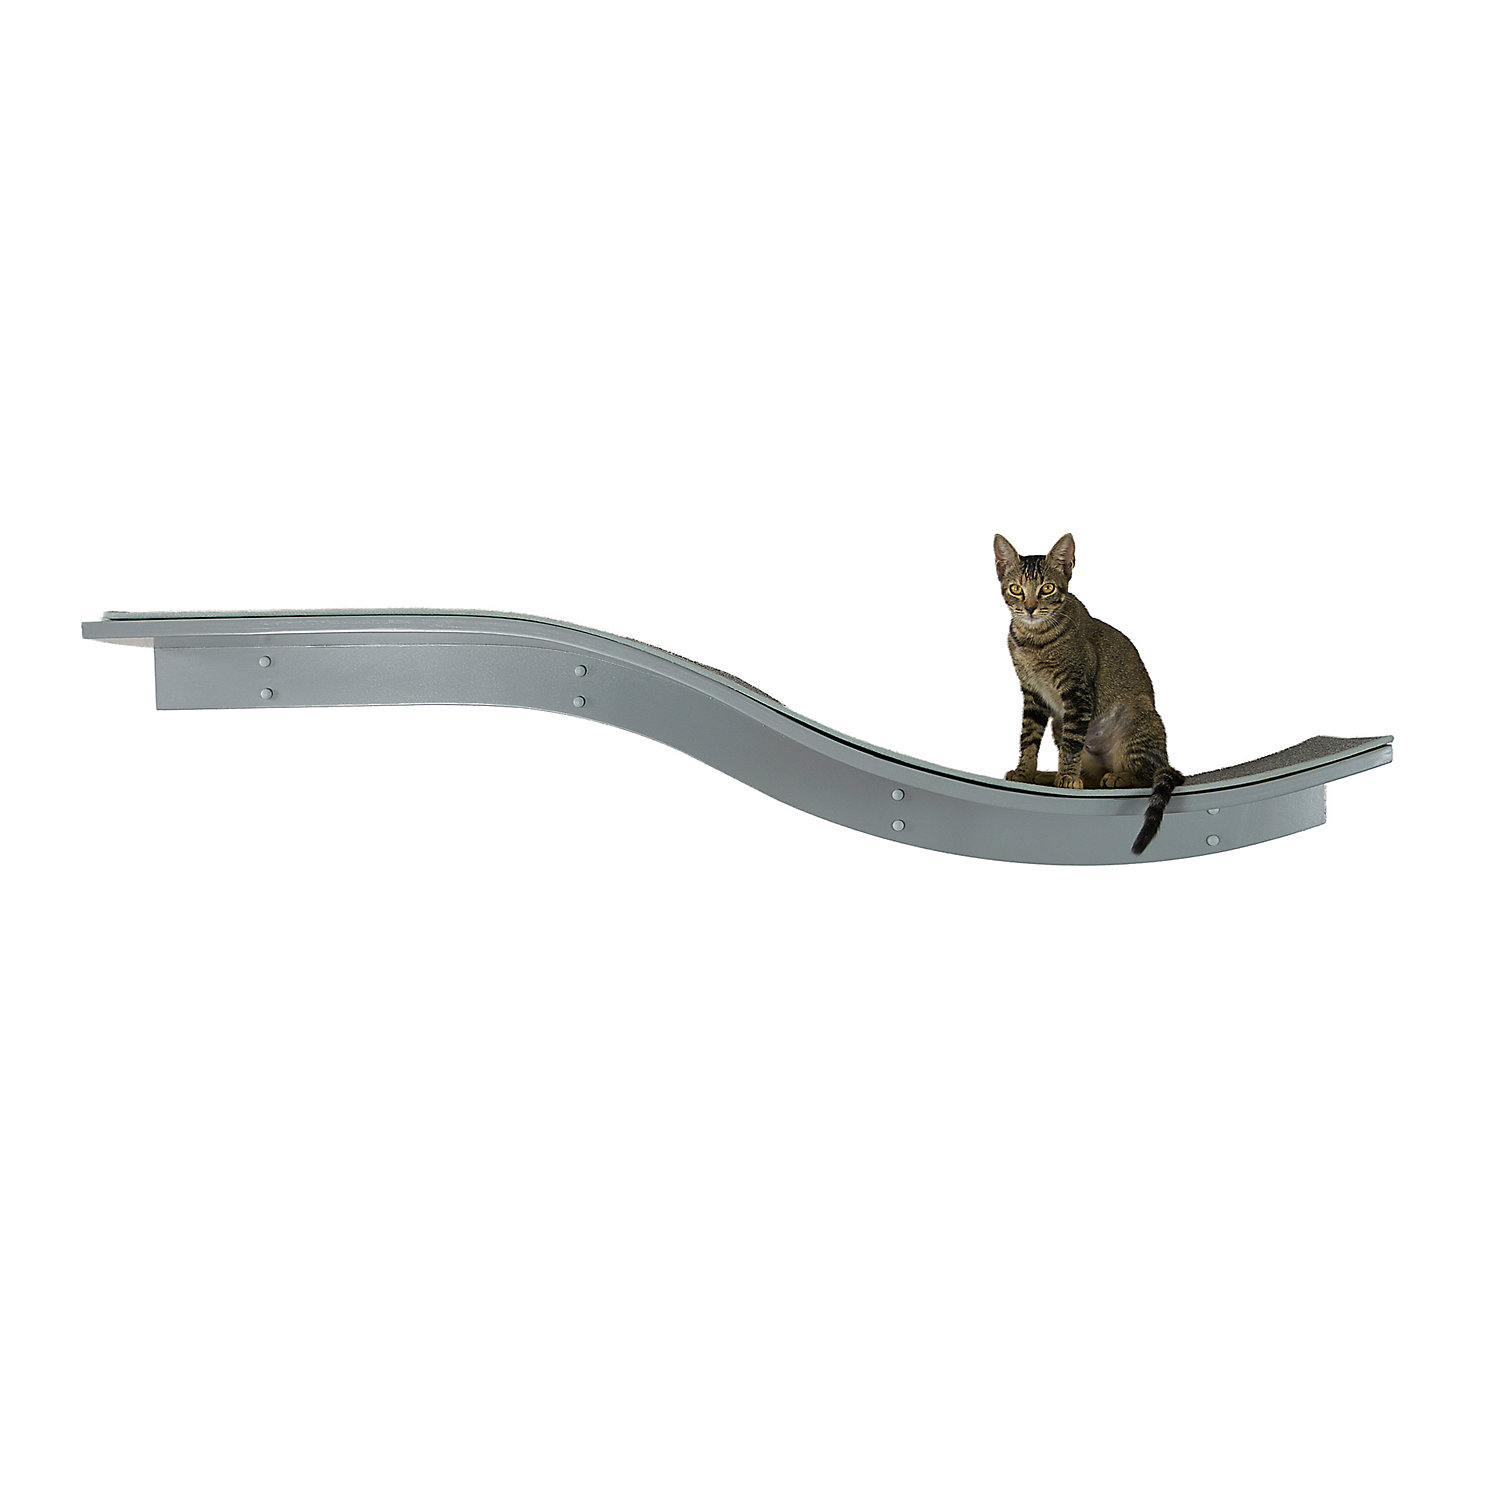 The Refined Feline Lotus Branch Cat Shelf in Smoke